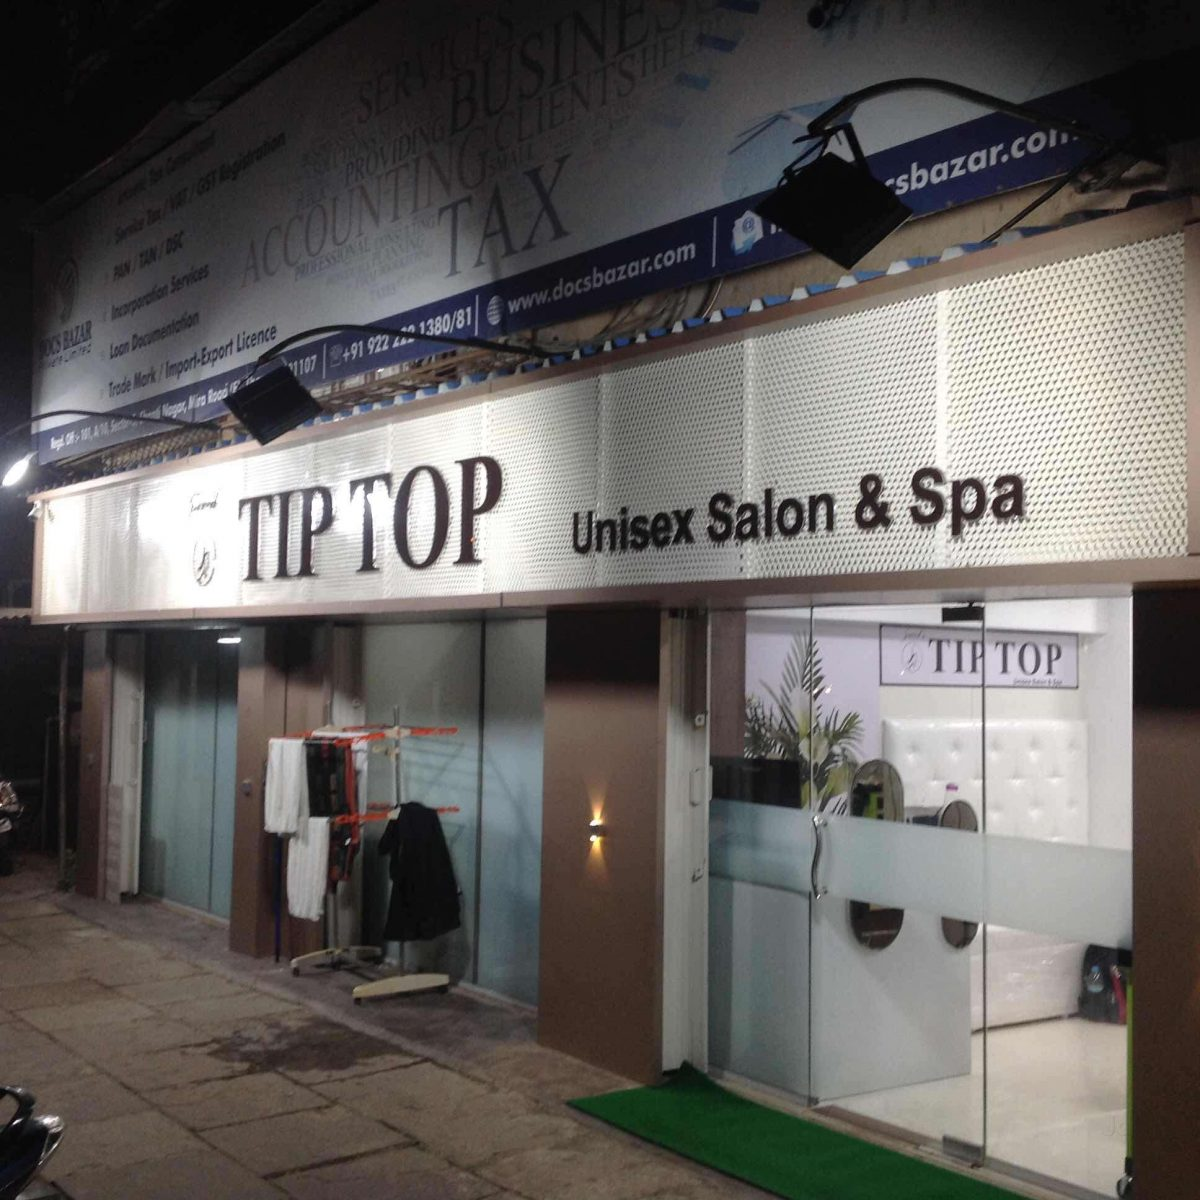 Tip Top Unisex Salon